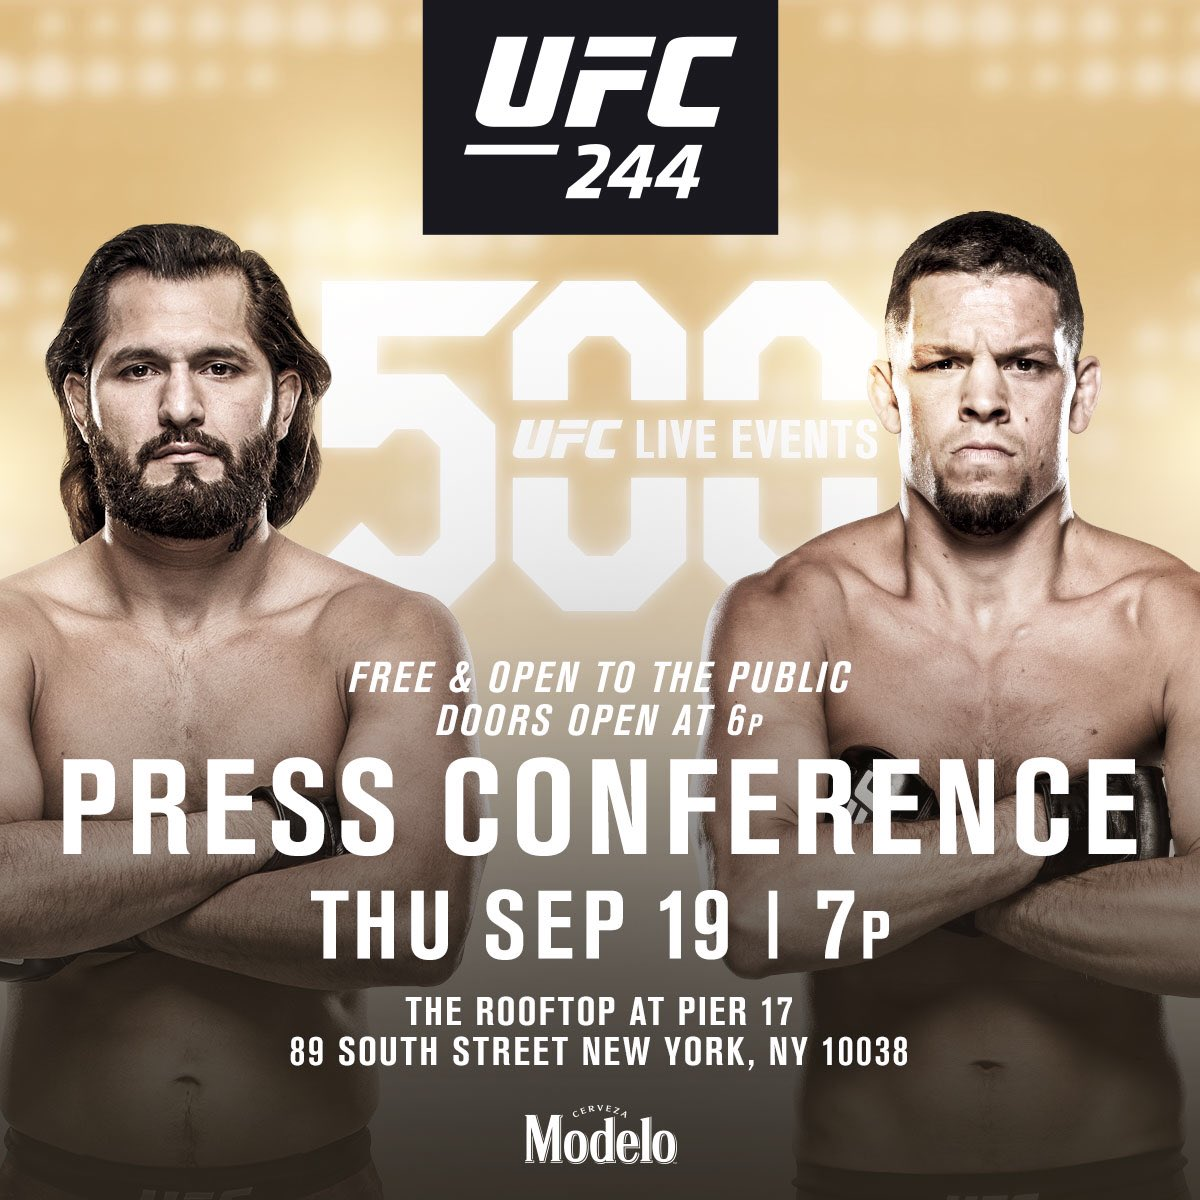 Buckle up, New York. See you Thursday 🗽 #UFC244